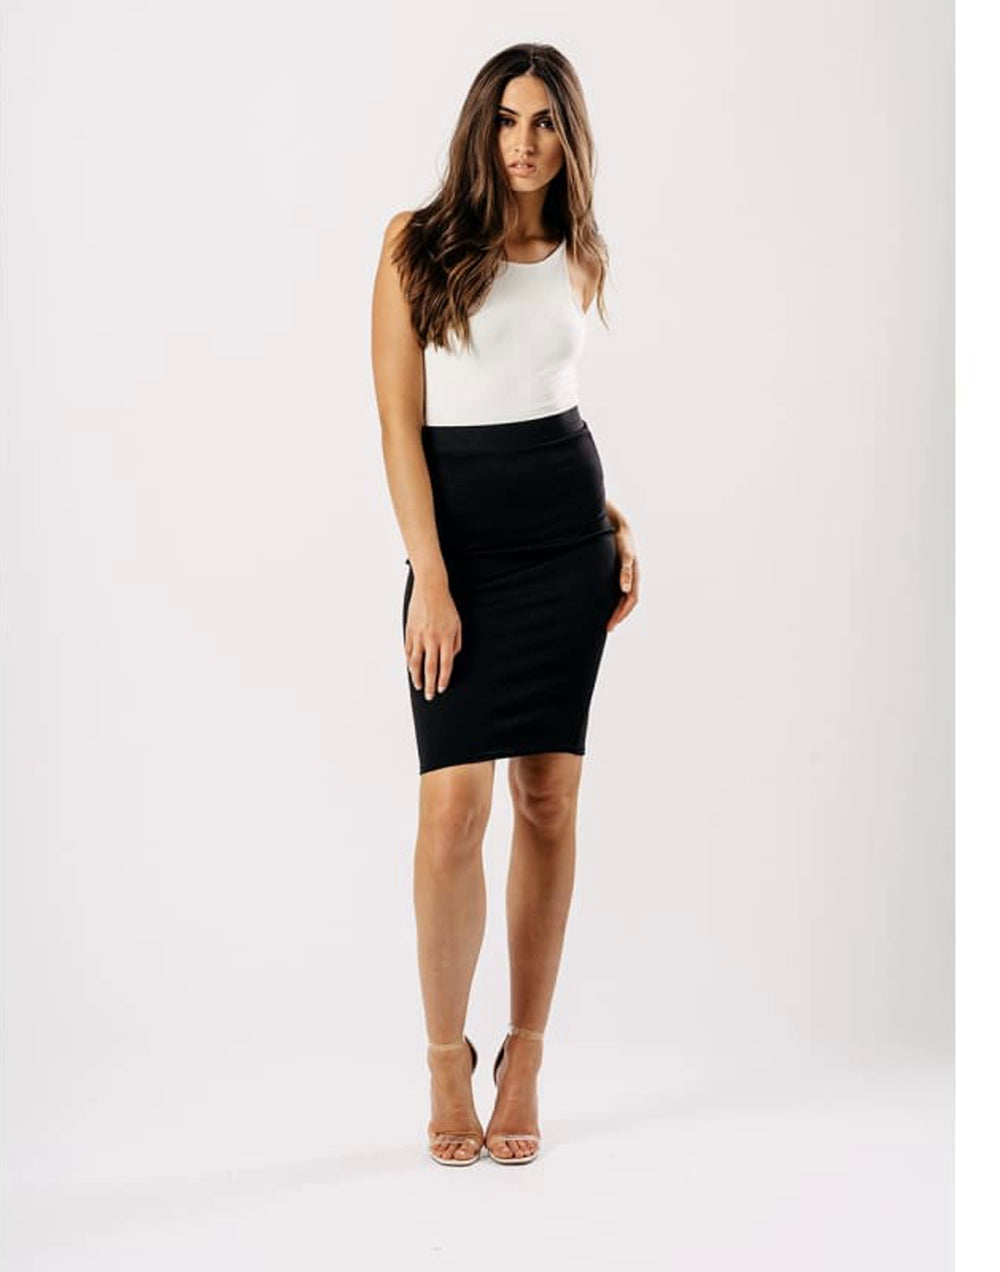 Black Bodycon Pencil Skirt - Skirts black fitted pencil skirt black pencil skirt black skirt Bodycon Skirts influence